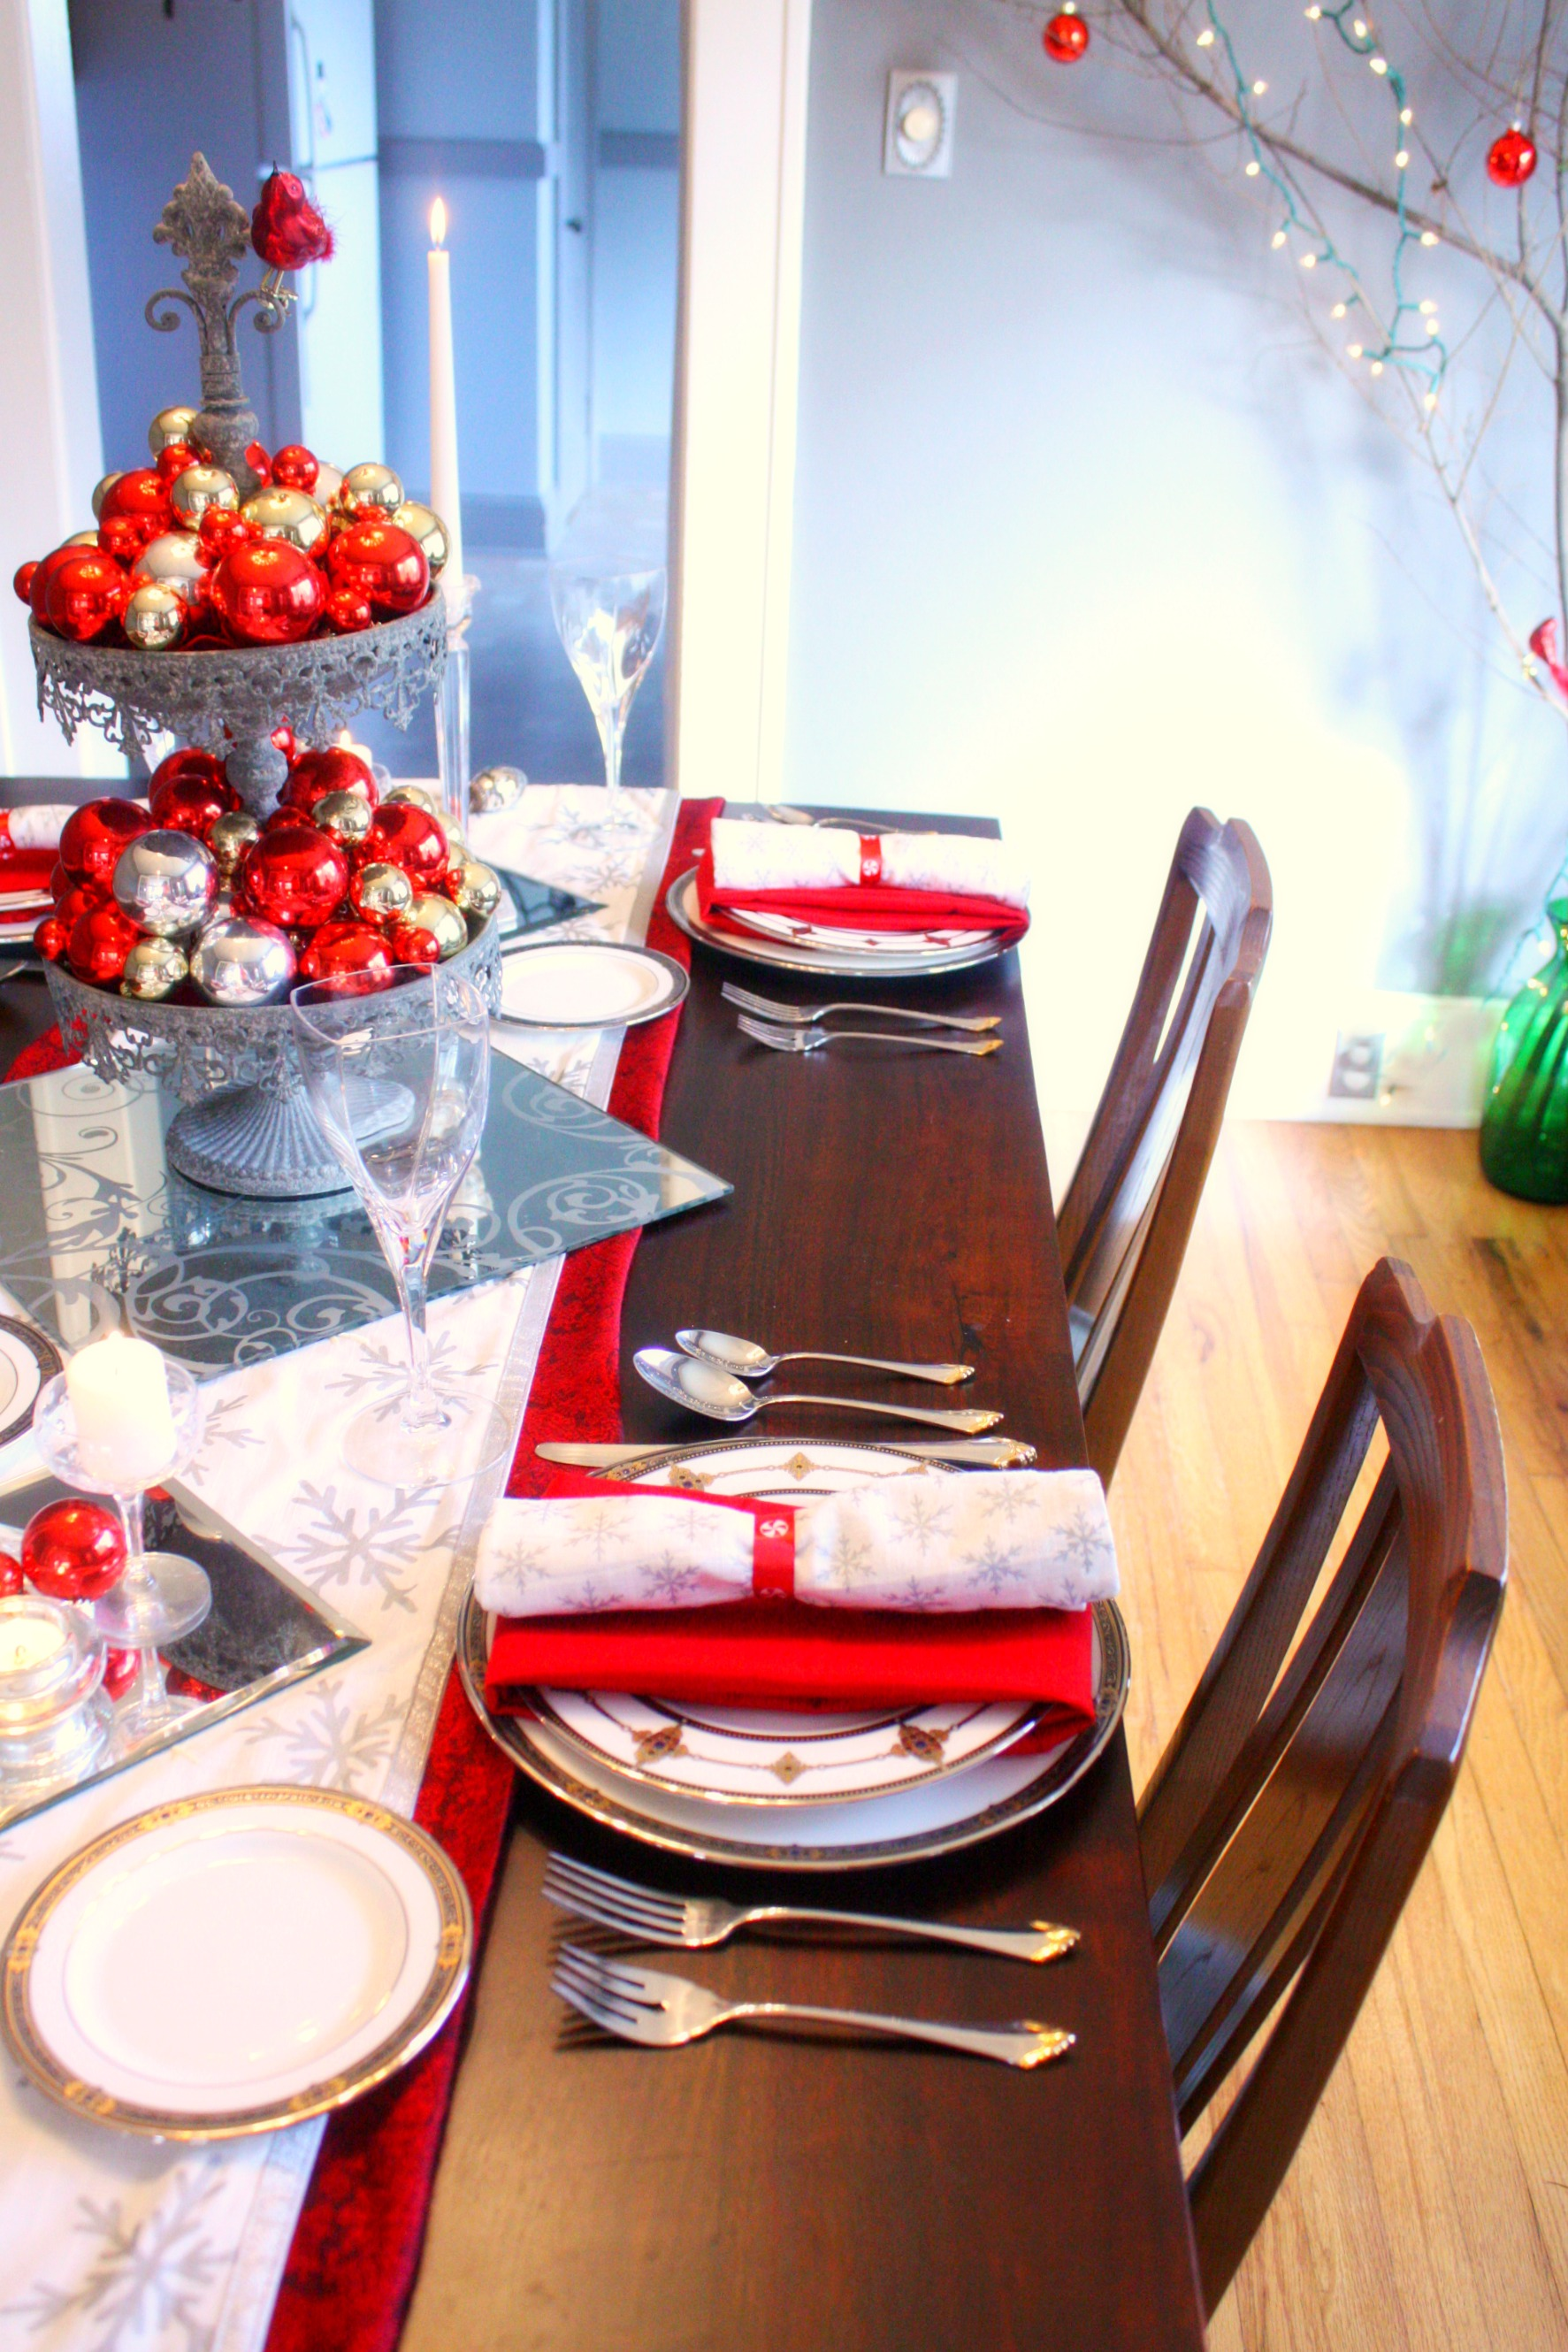 I ... & Red \u0026 Silver Christmas Table Setting \u2022 Craft Thyme